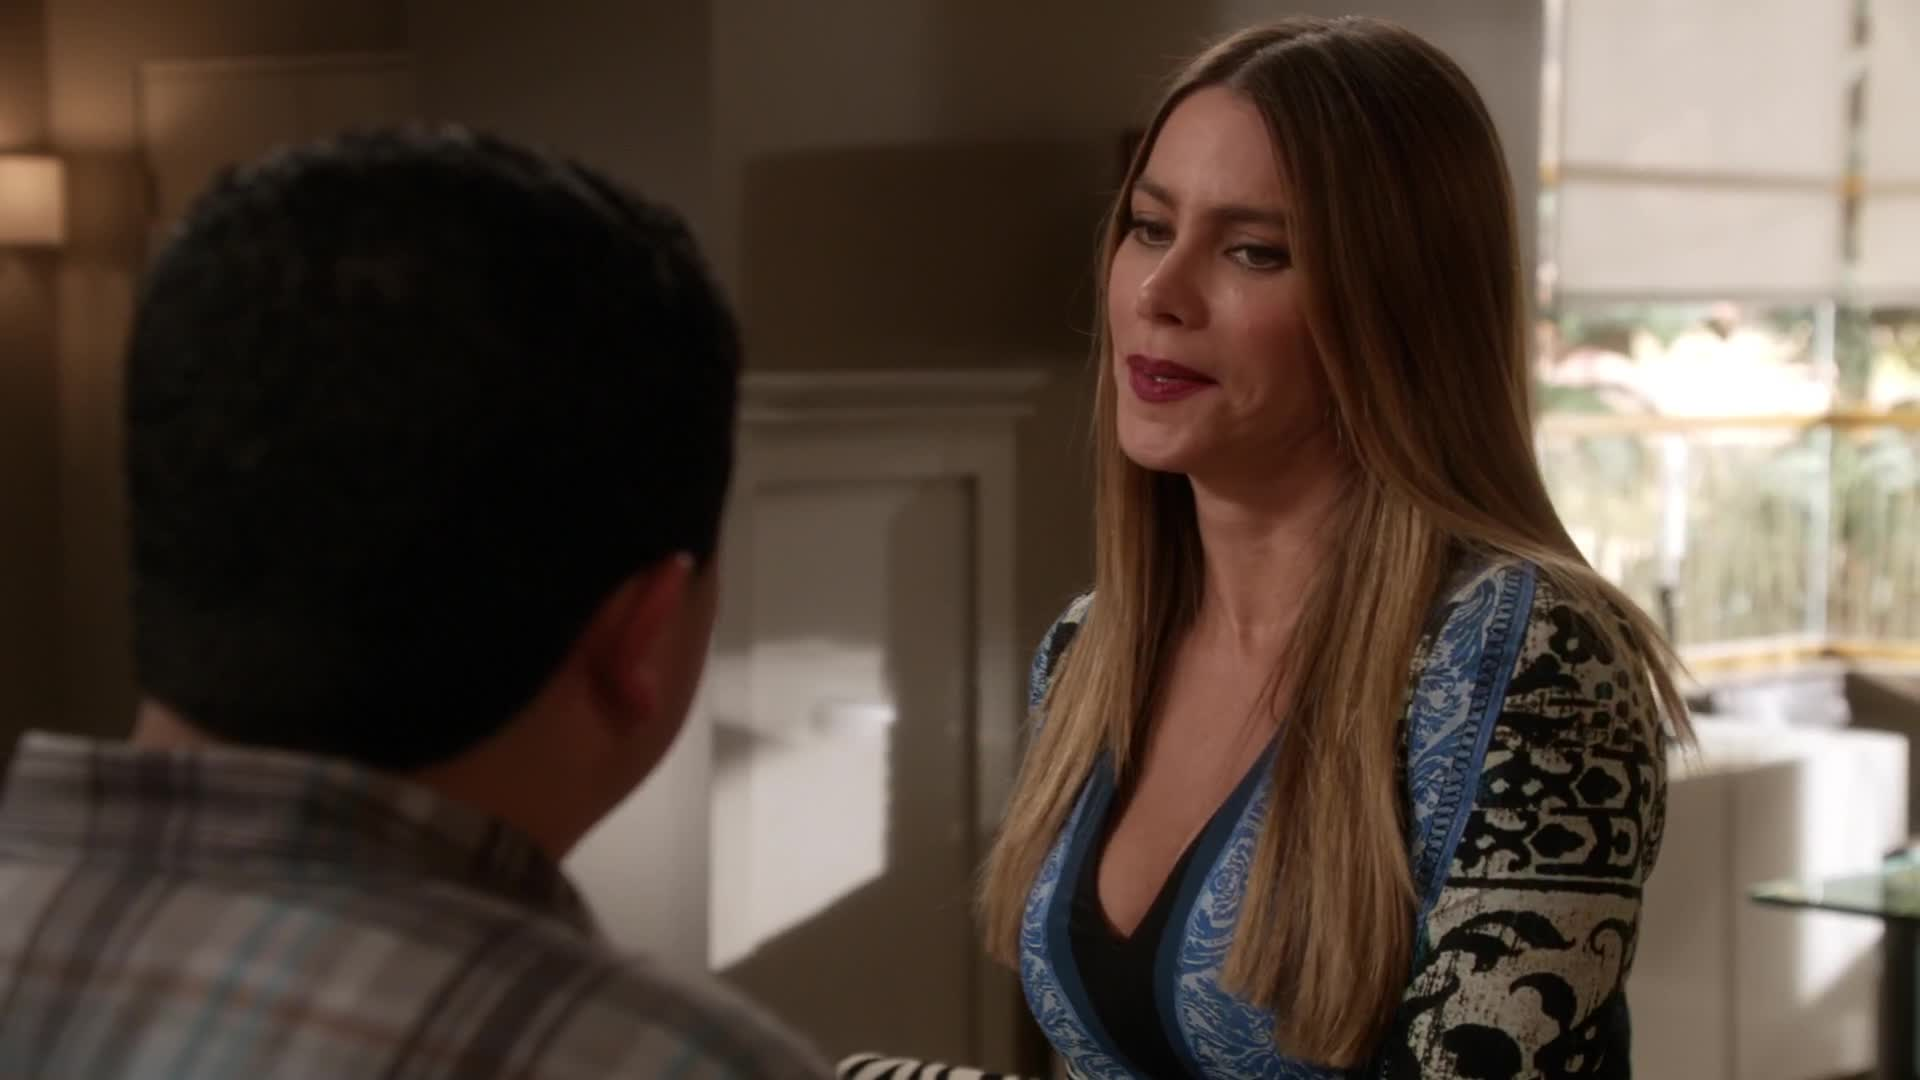 Sofia Vergara sexy cleavage in blue top scene from Modern Family